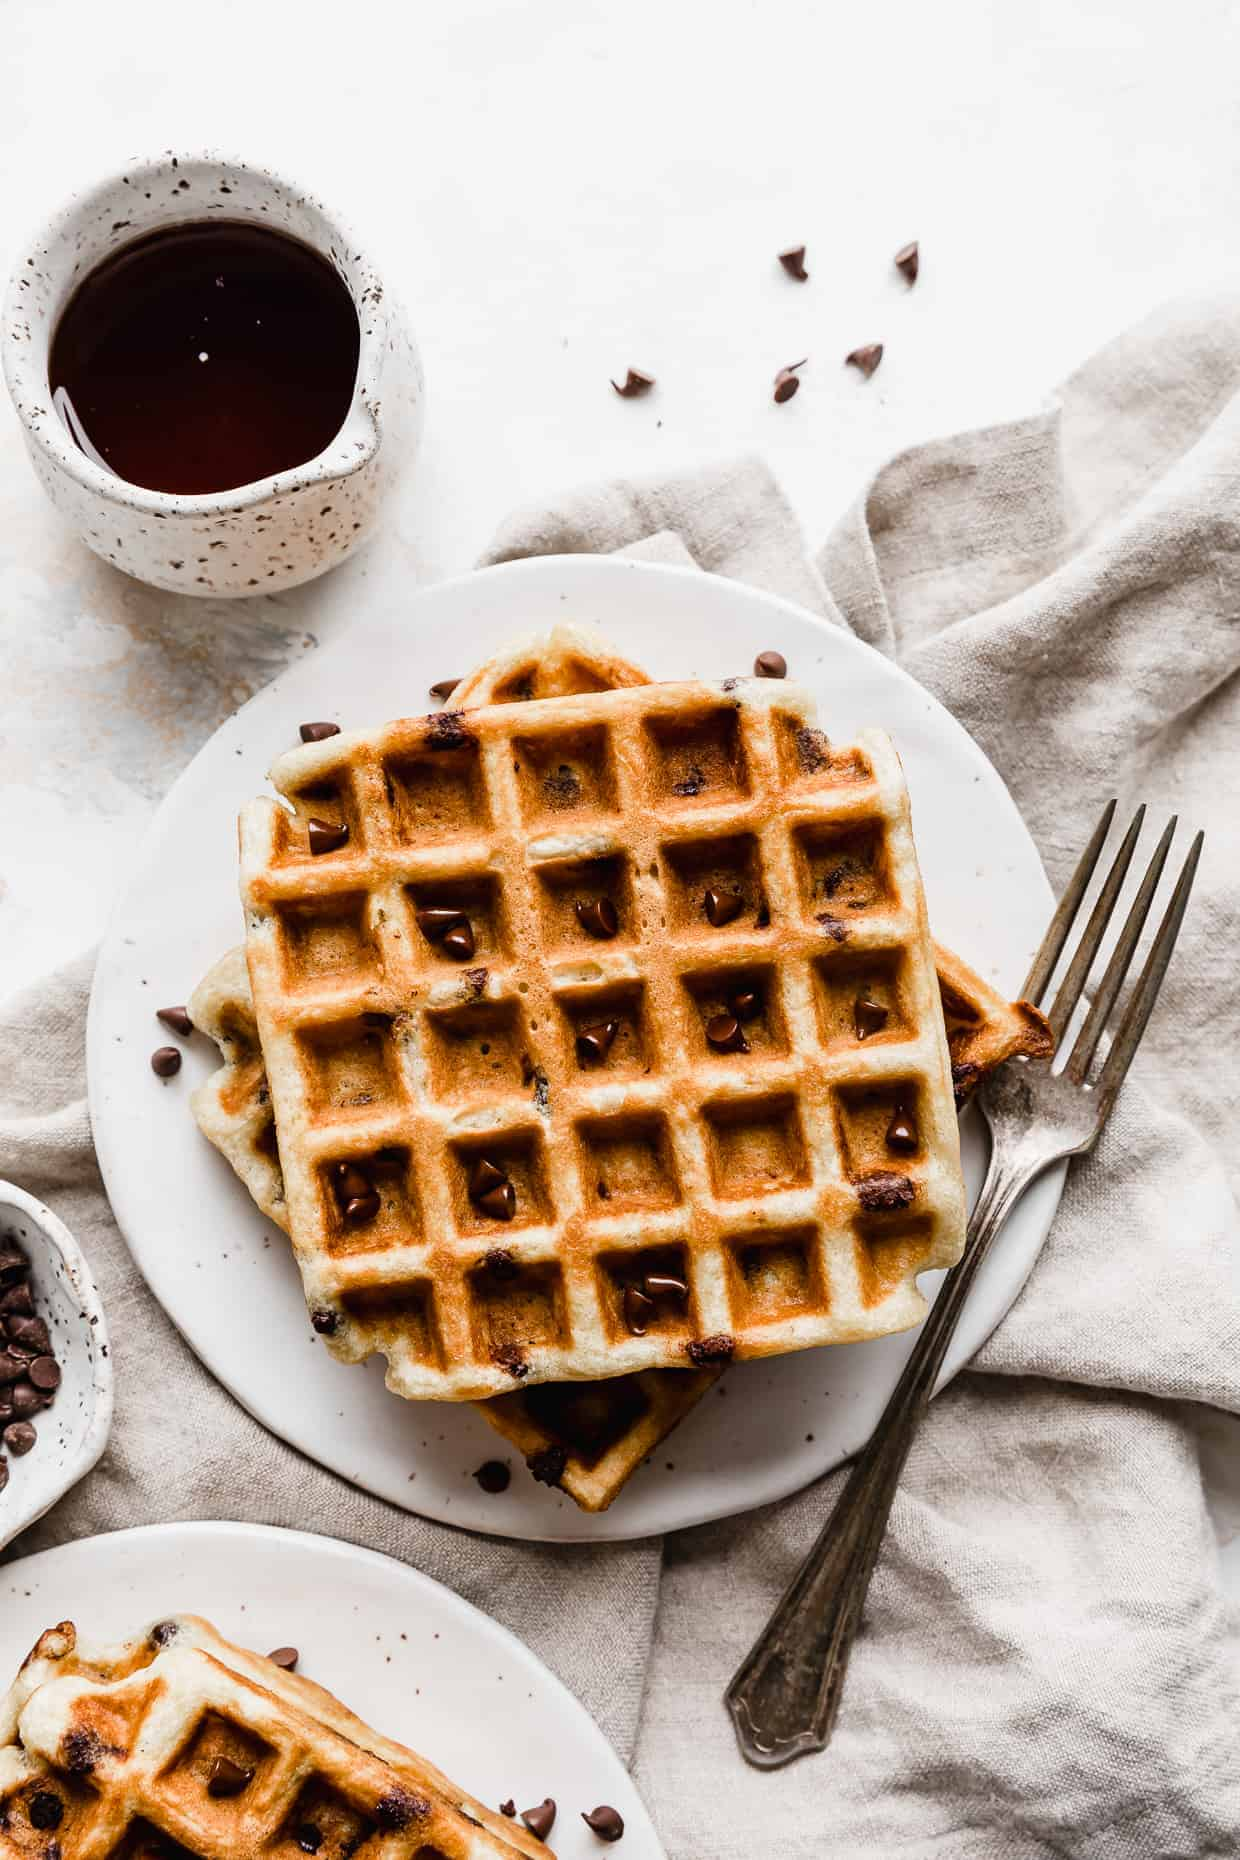 Chocolate Chip Waffles on a white plate with syrup in the left corner.